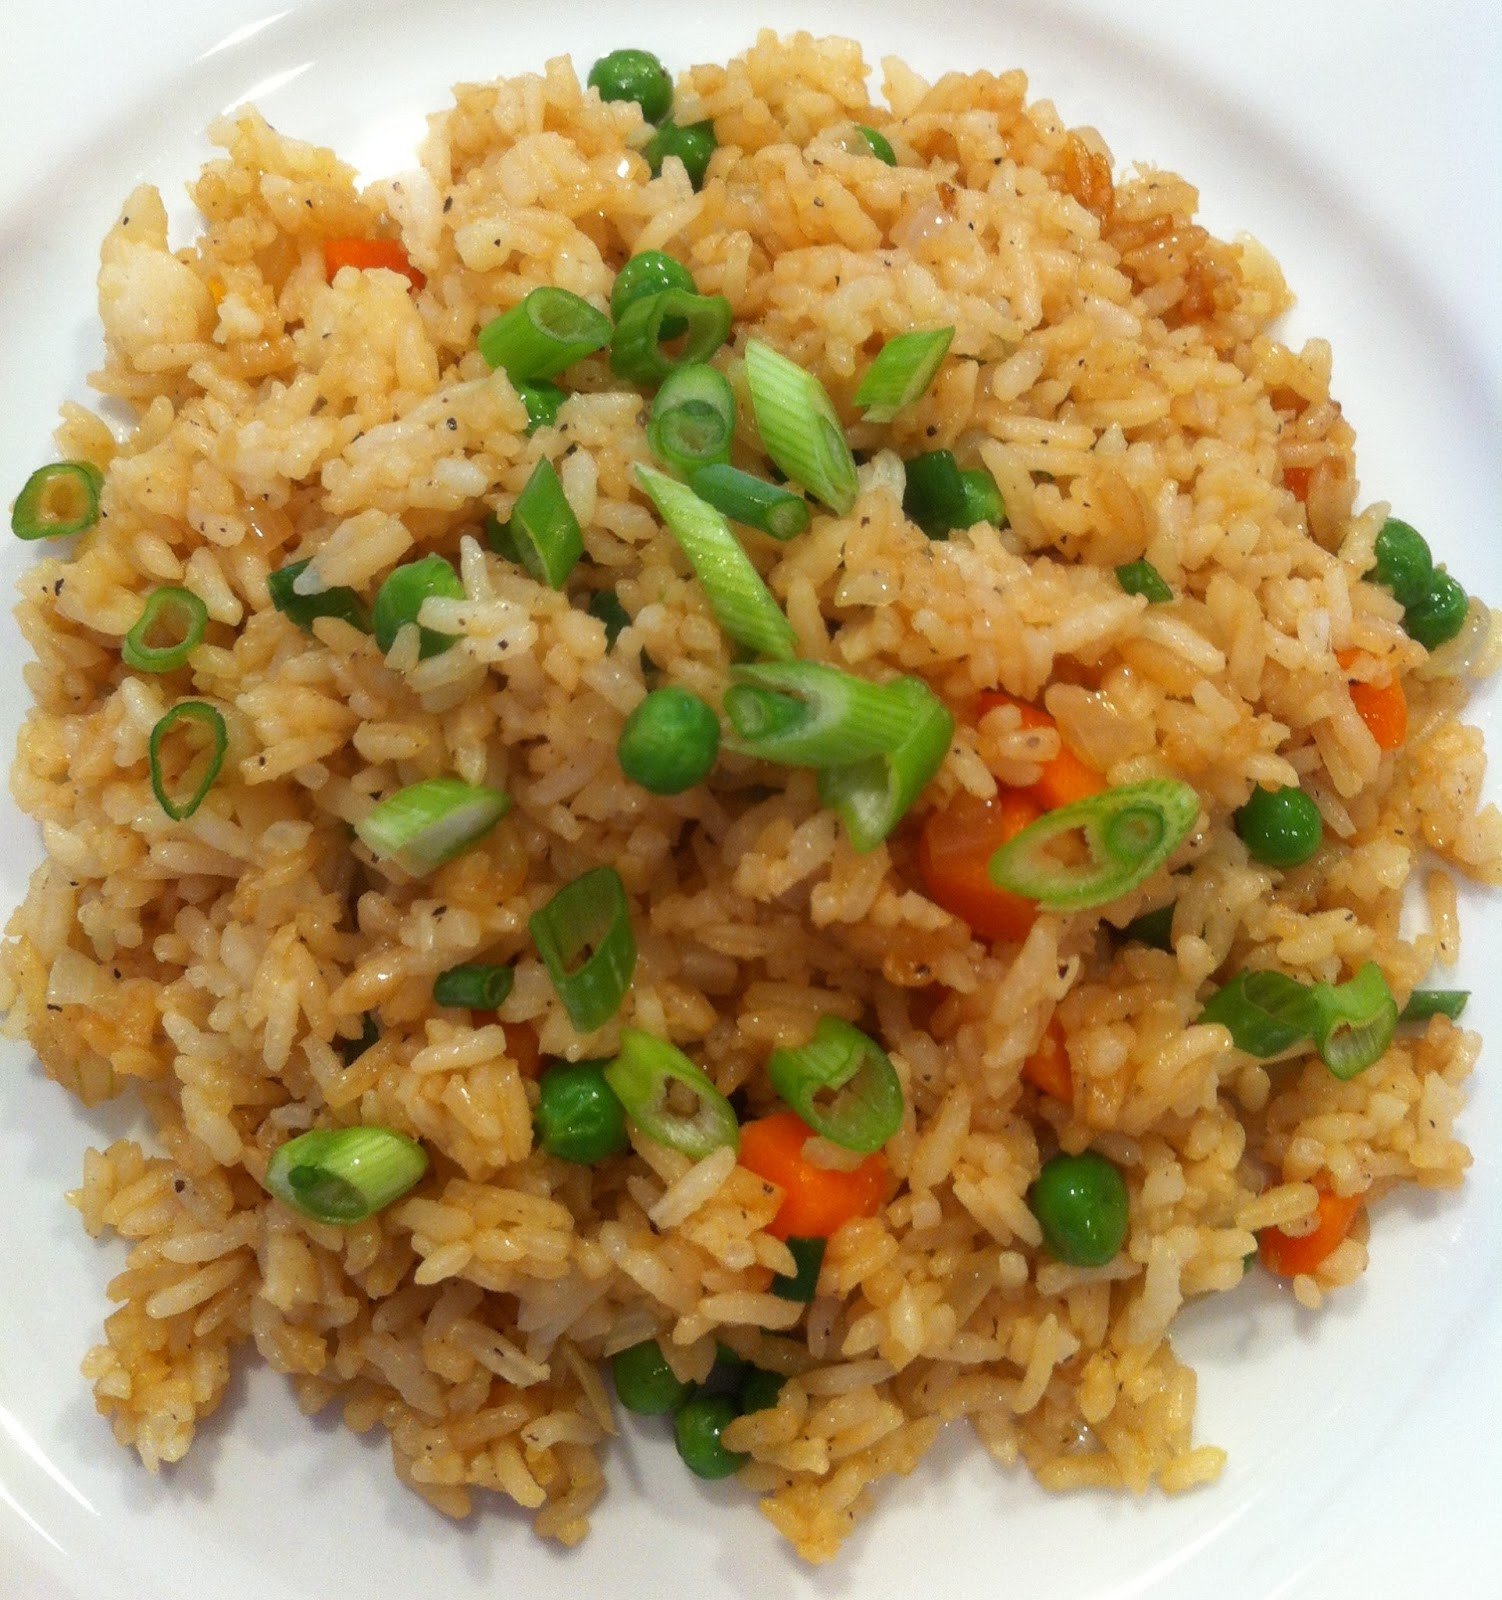 Hibachi Fried Rice  Richly Blessed Hibachi Style Fried Rice 15 Minute Meal